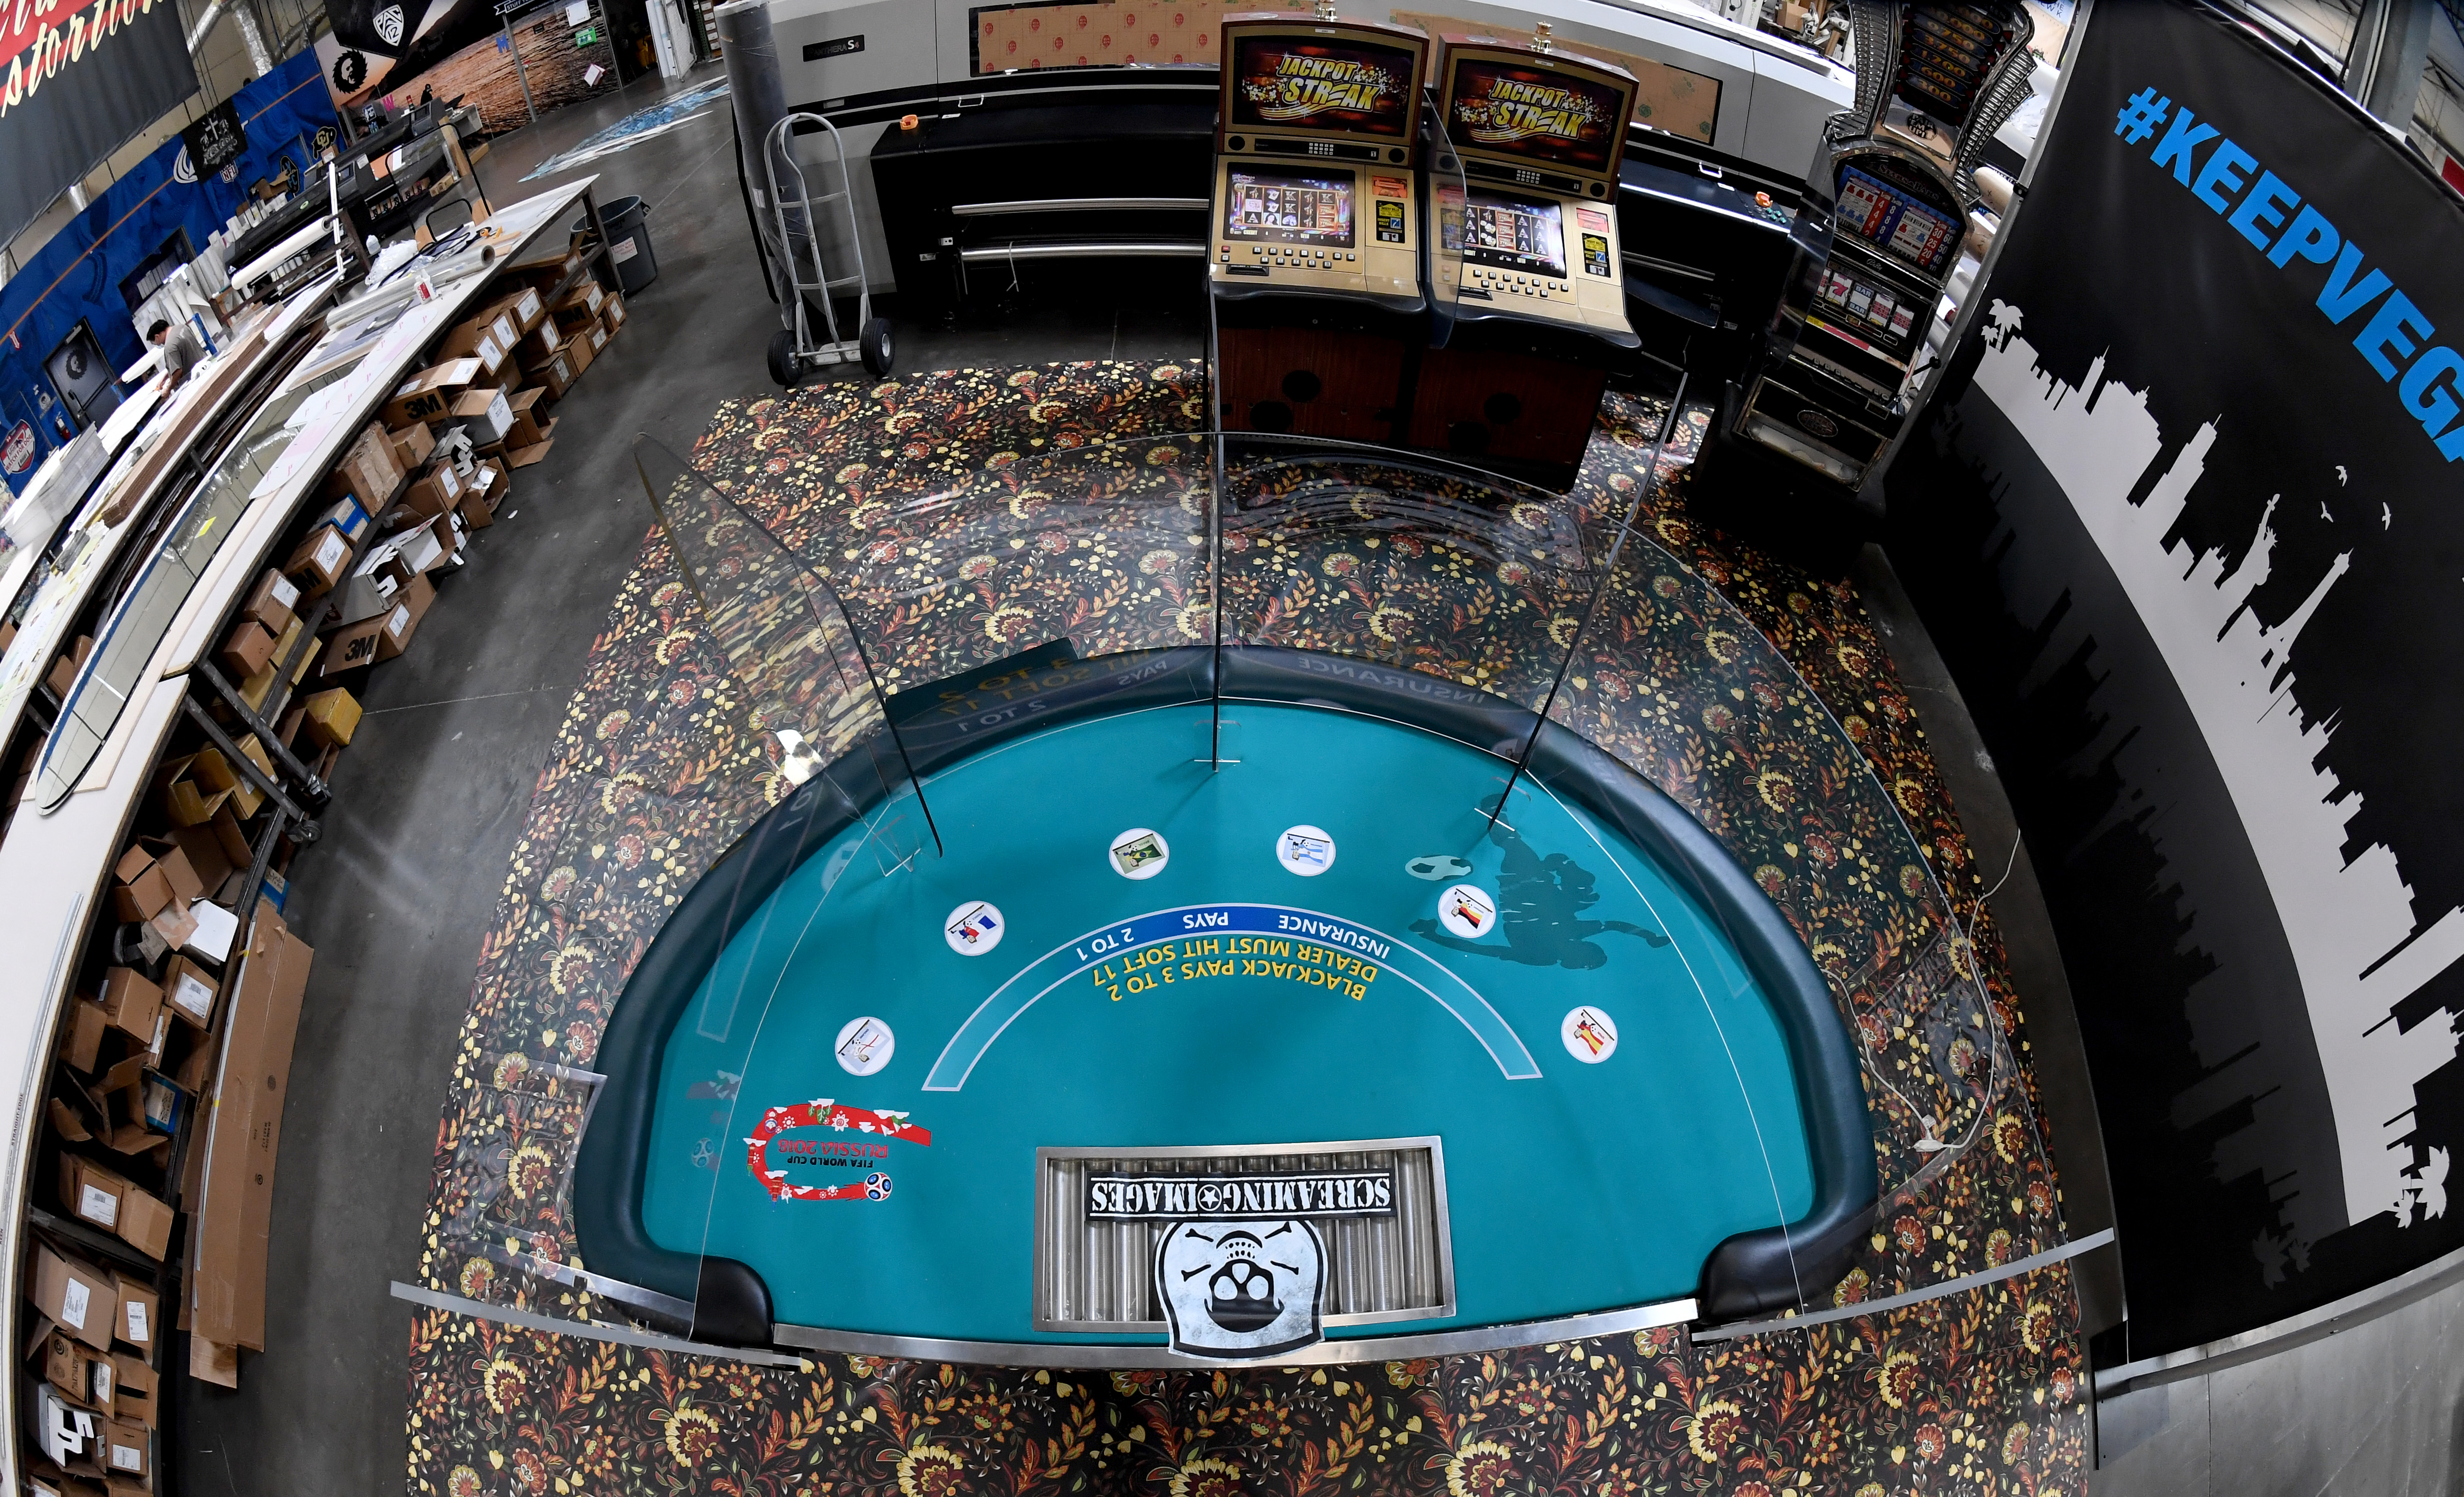 Las Vegas Company Makes Safety Shields For Casinos To Keep Gamblers Distanced Once Casinos Open Back Up